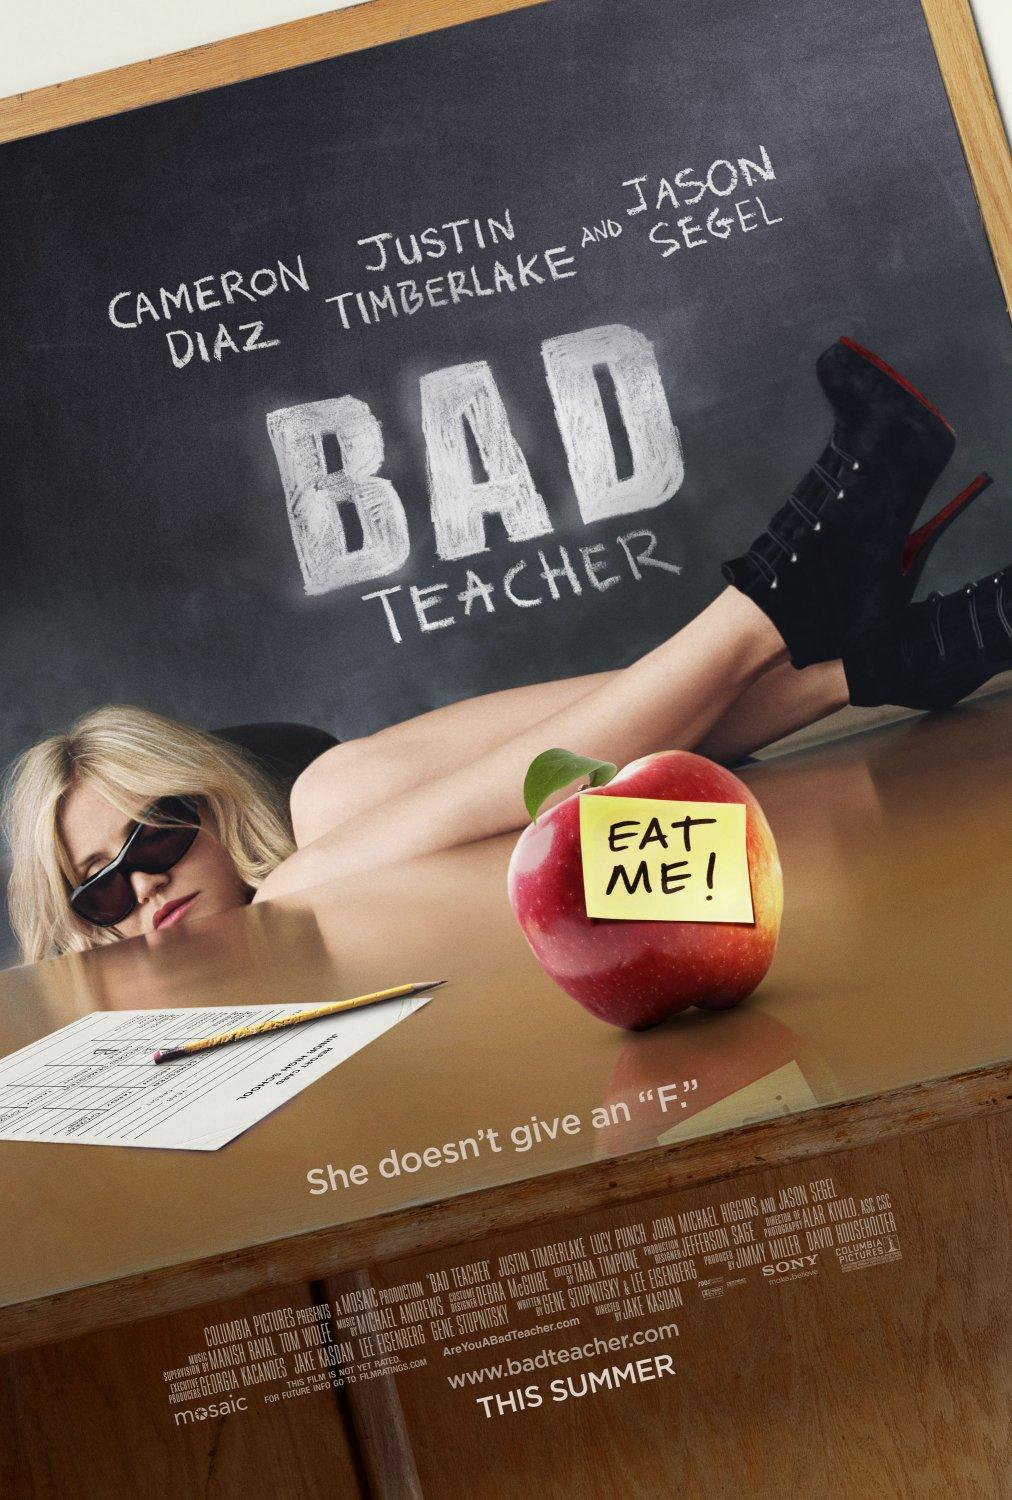 Bad%20Teacher%202011.1 1 دانلود فیلم Bad Teacher 2011